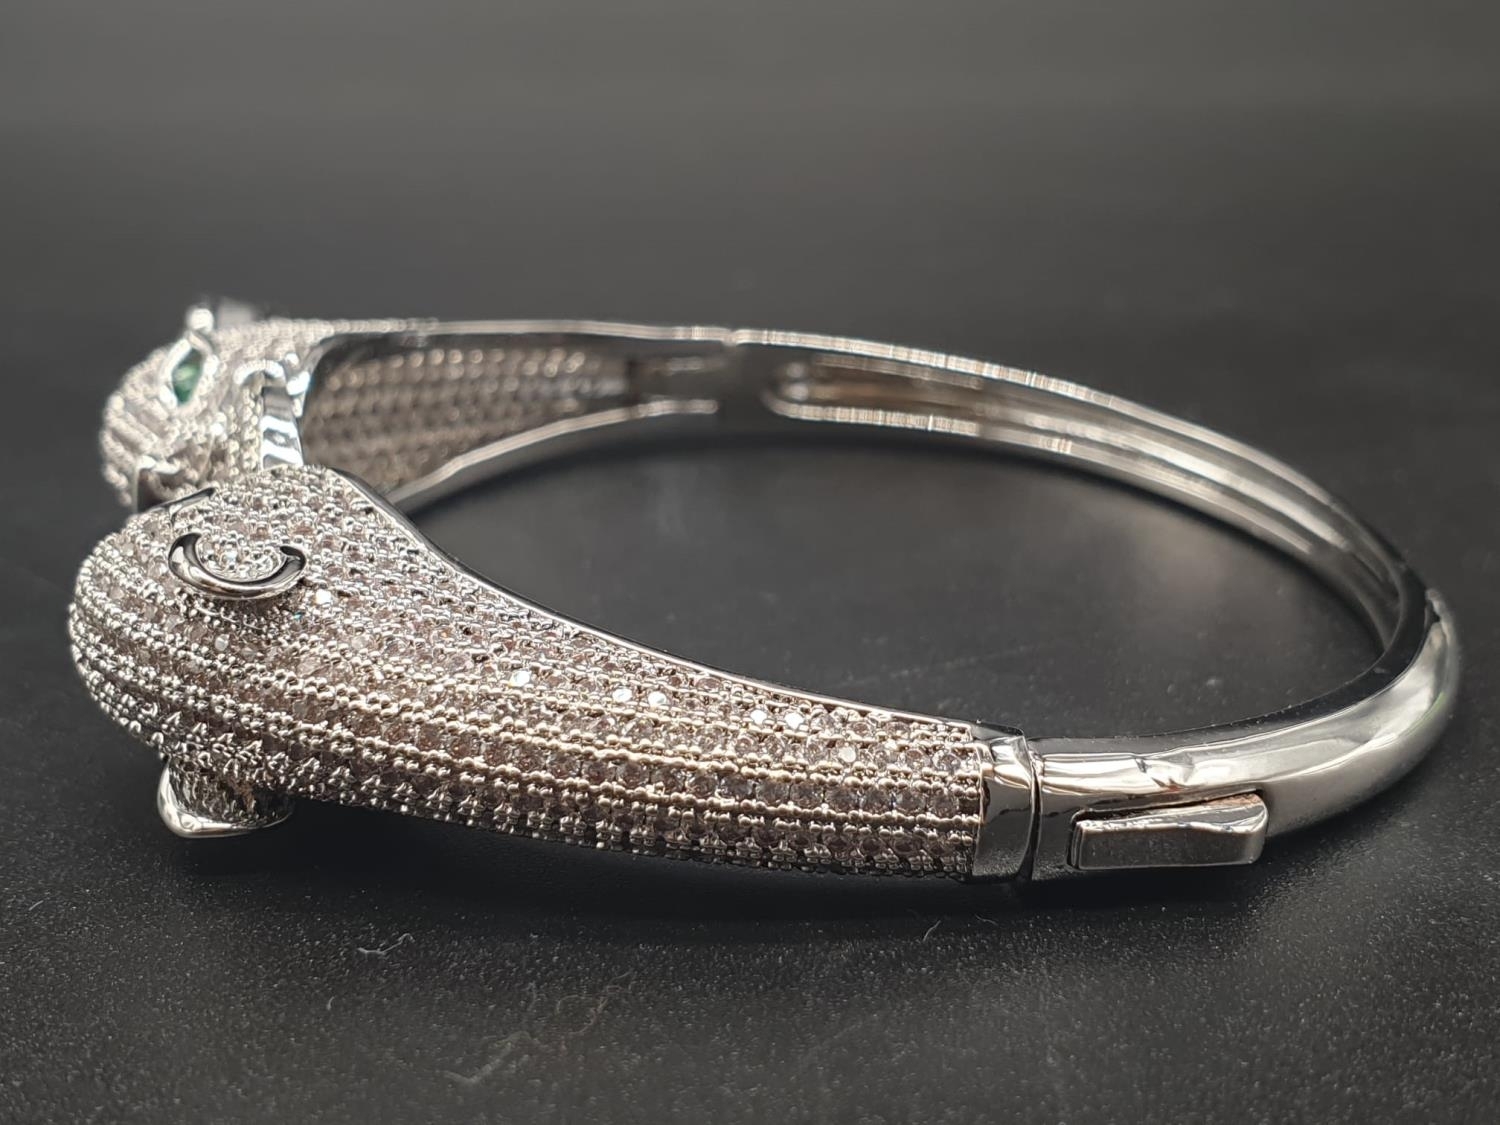 A white metal (untested) Cartier Panther style bracelet and earrings set In a presentation box. Ring - Image 5 of 15